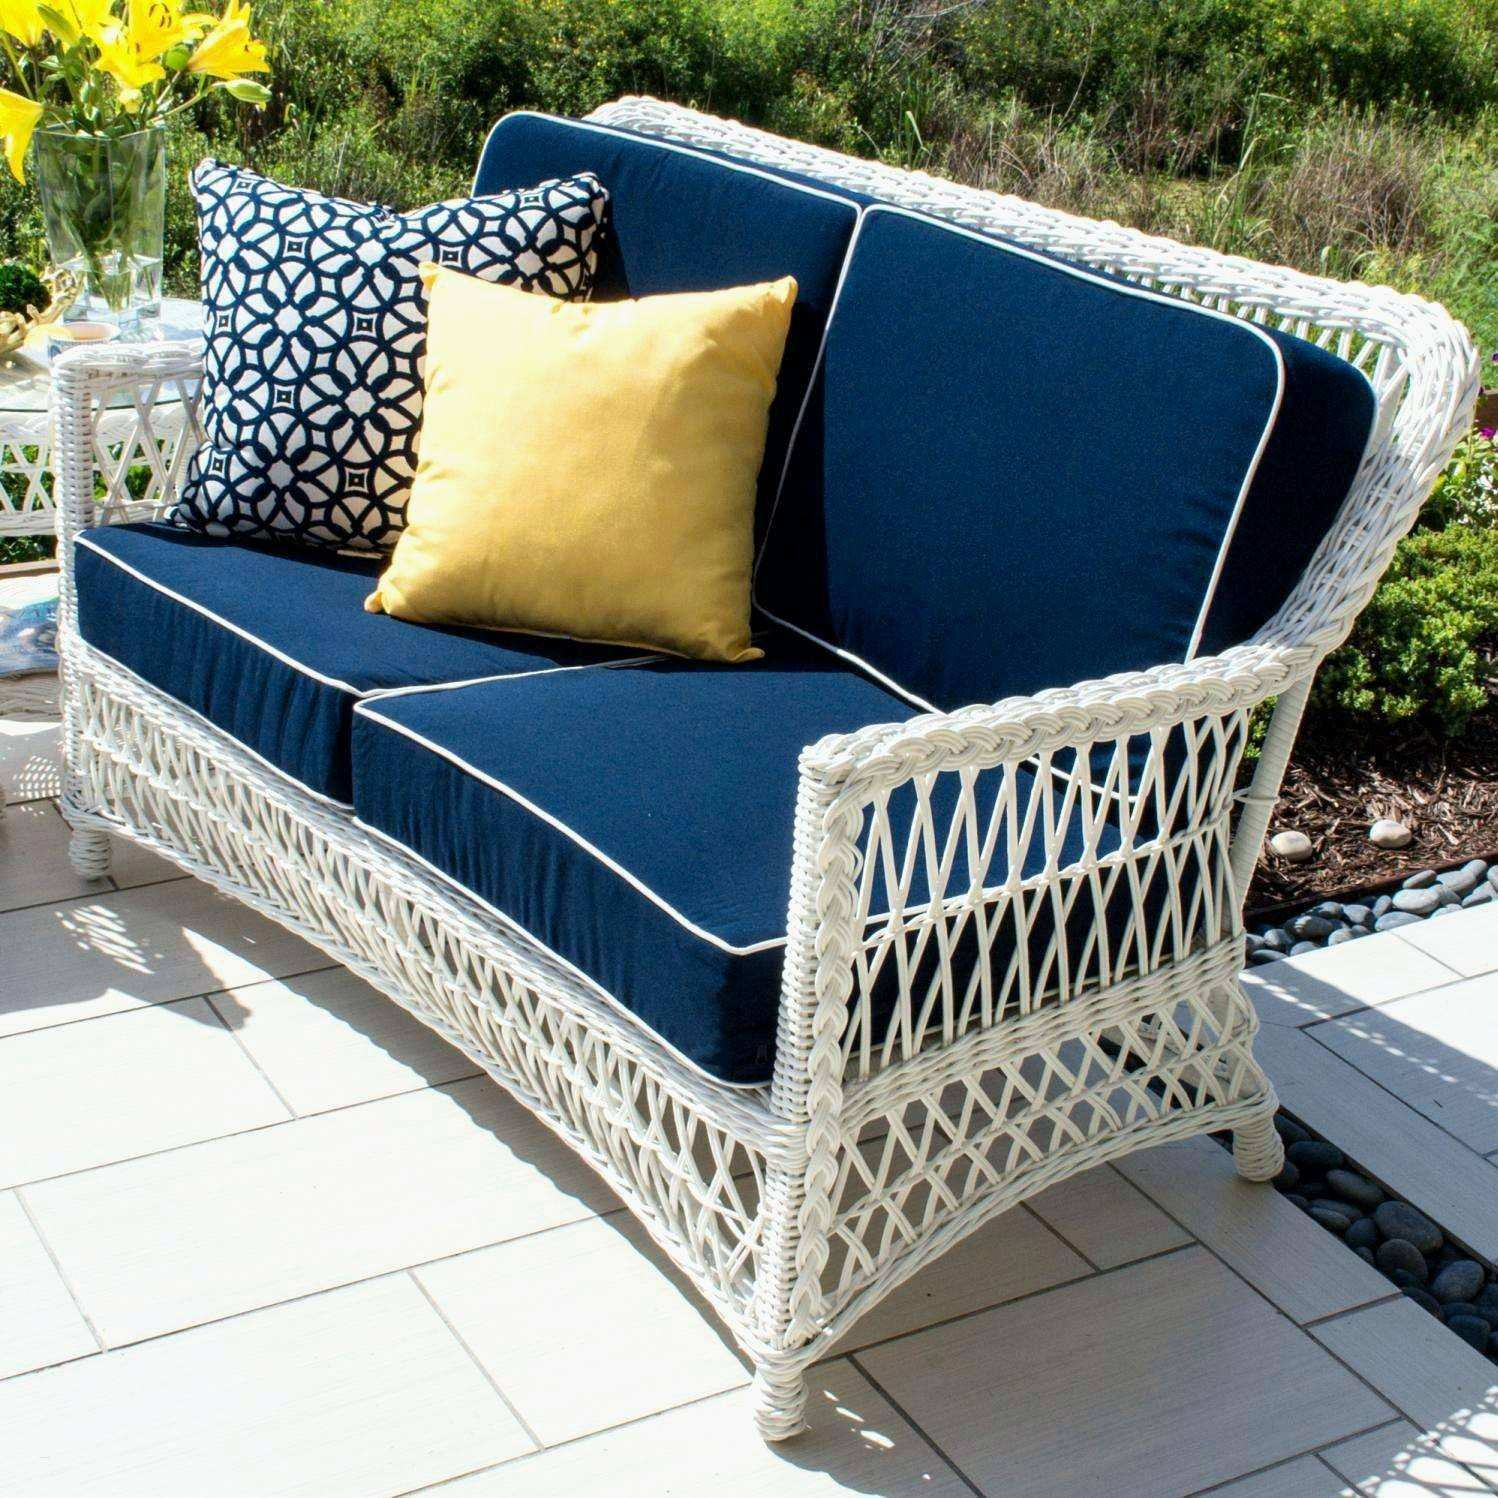 Cemetery Vase Liners Of Awesome Planter Ideas Garden Ideas Throughout Patio Cover Ideas Awesome Wicker Outdoor sofa 0d Patio Chairs Sale Replacement Cushions Design